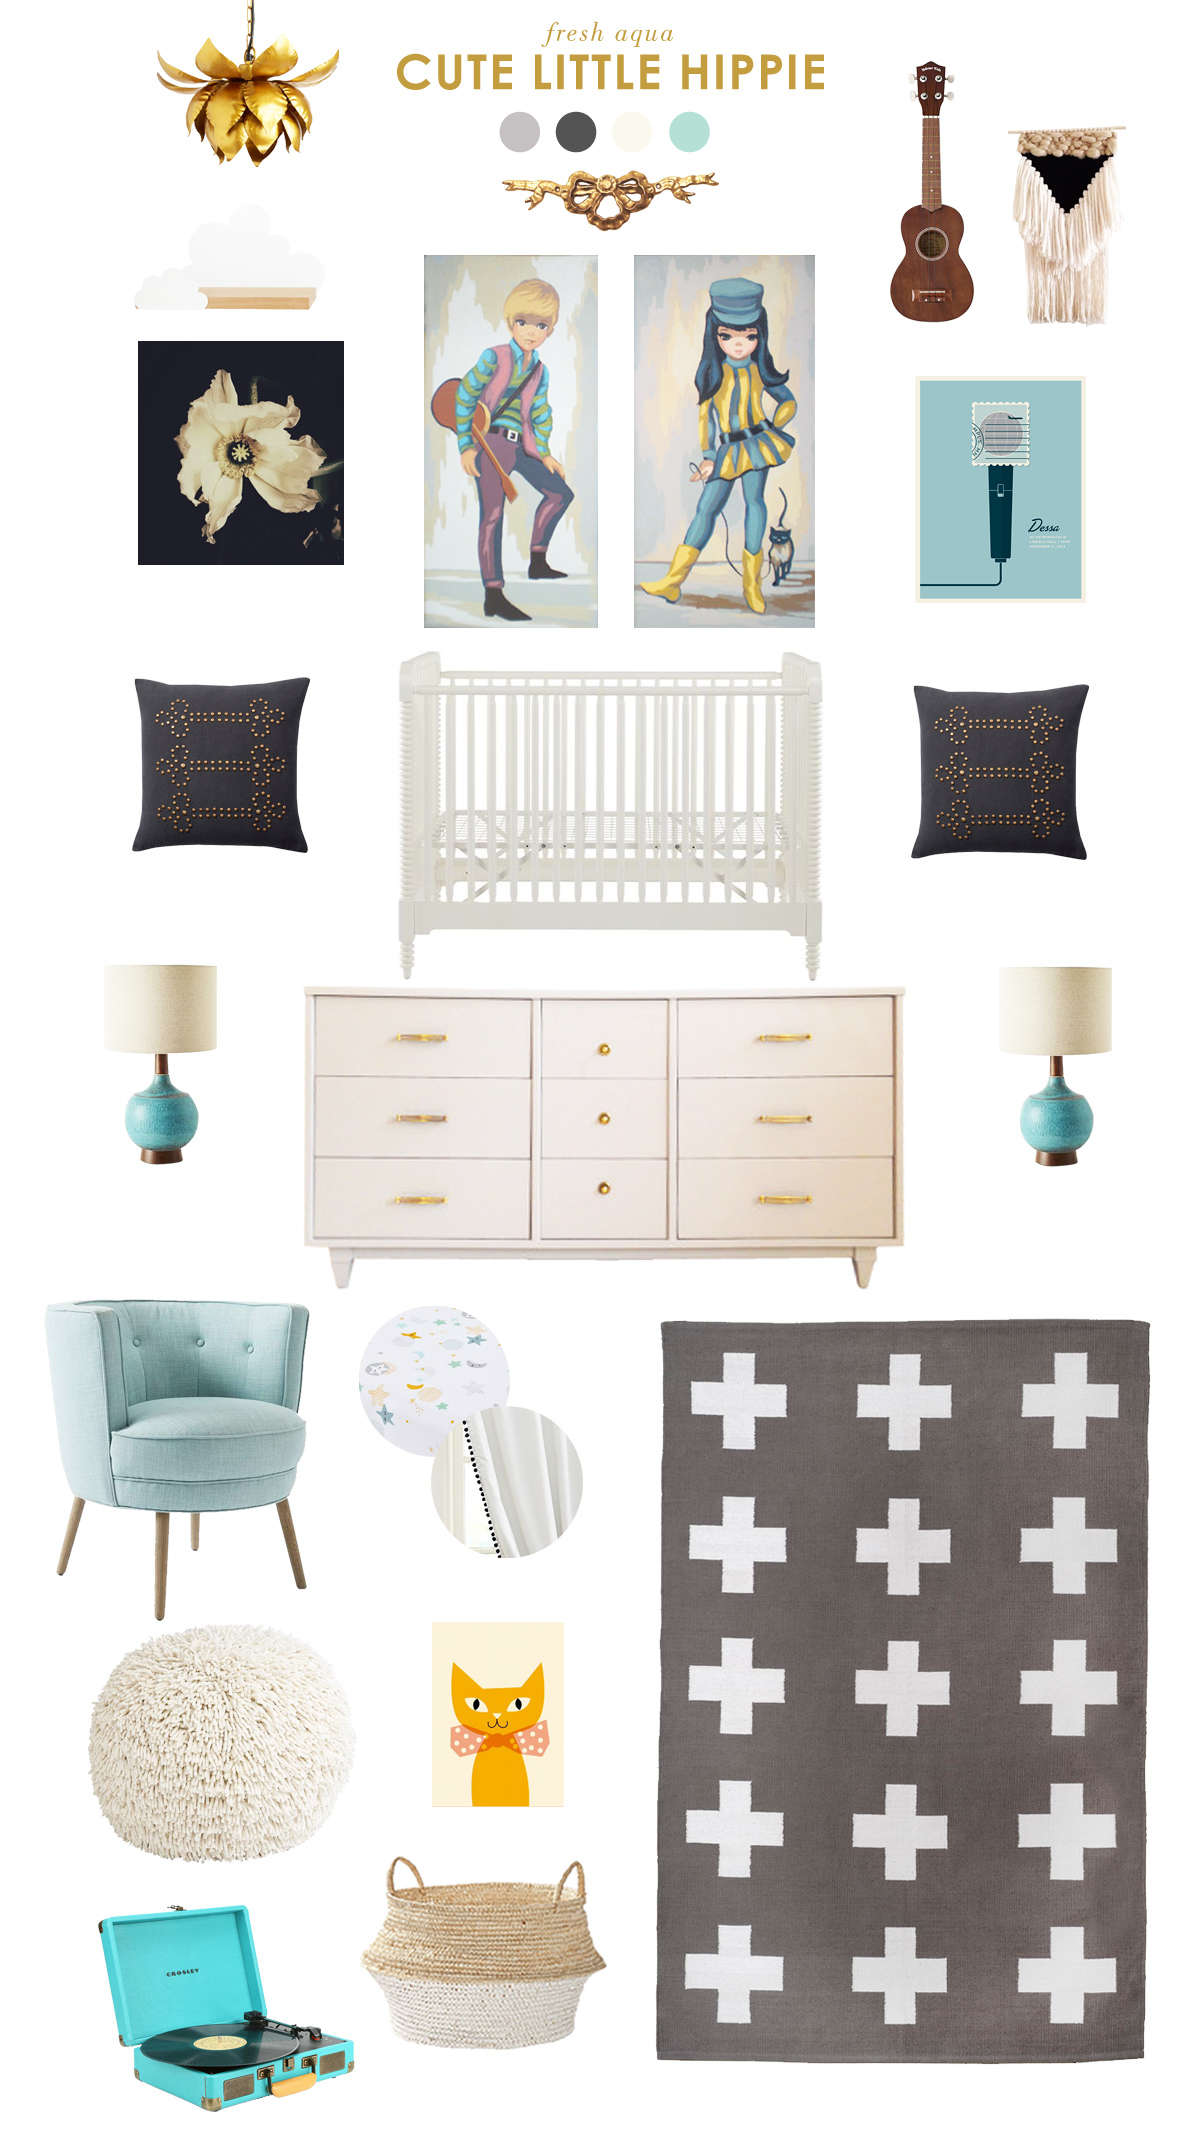 music baby room inspiration